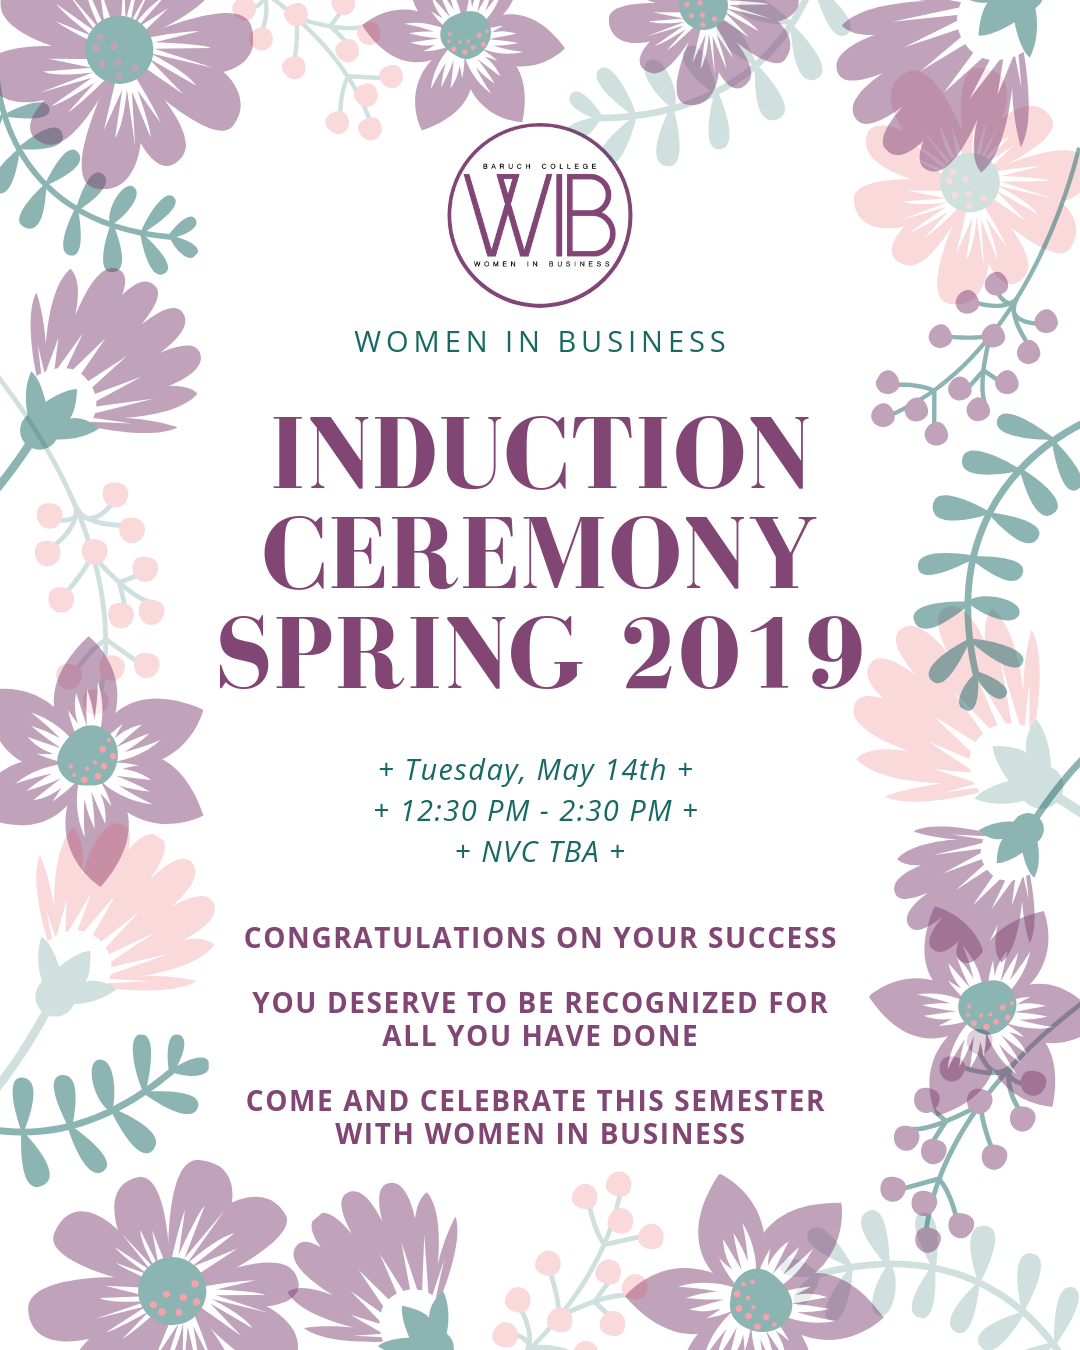 INDUCTION CEREMONY Spring 2019